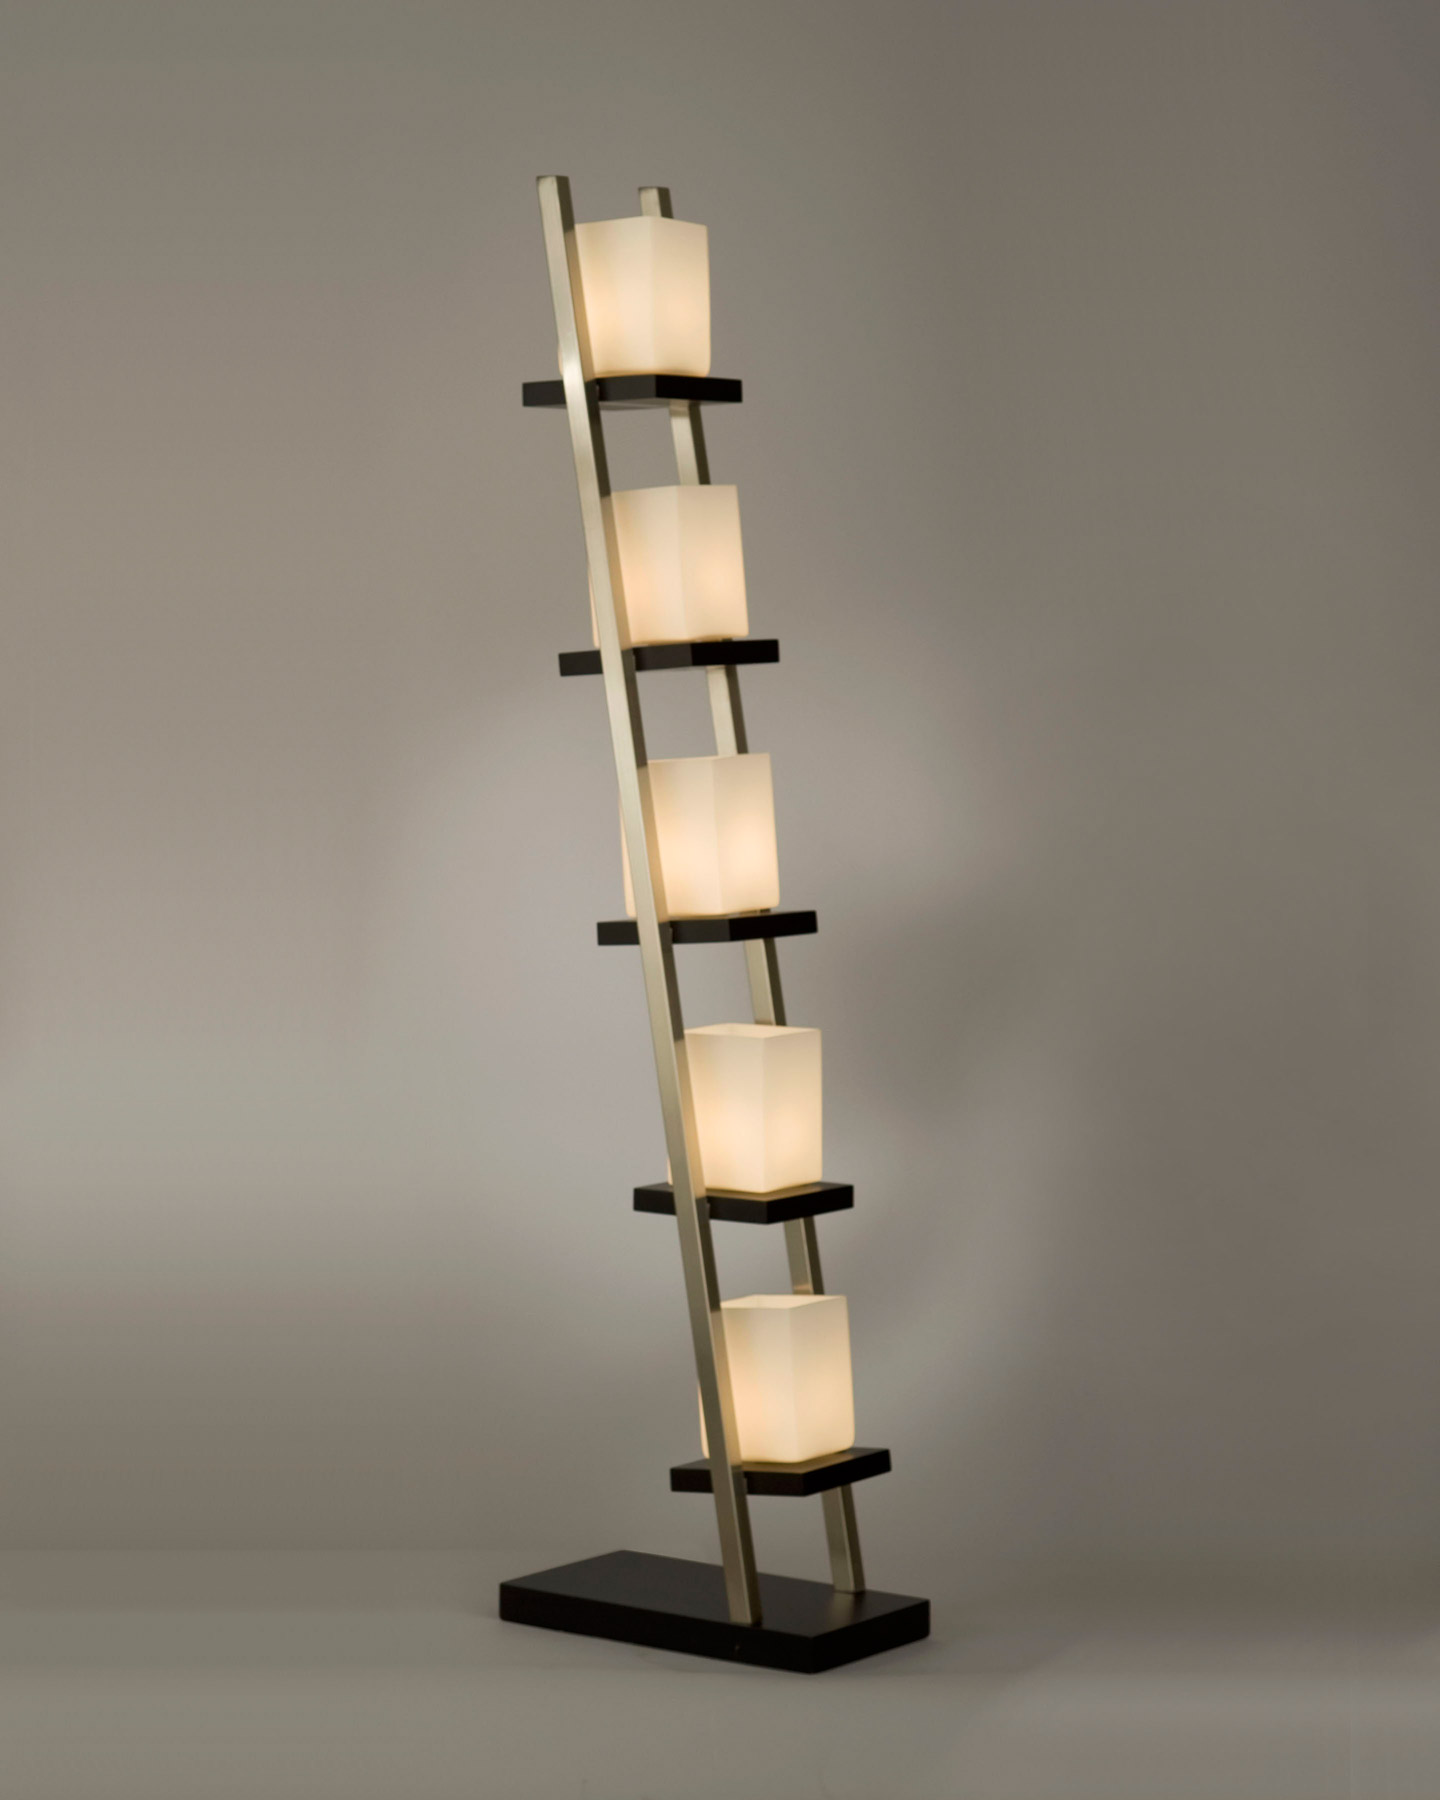 Nova lighting 11815 escalier floor lamp aloadofball Image collections